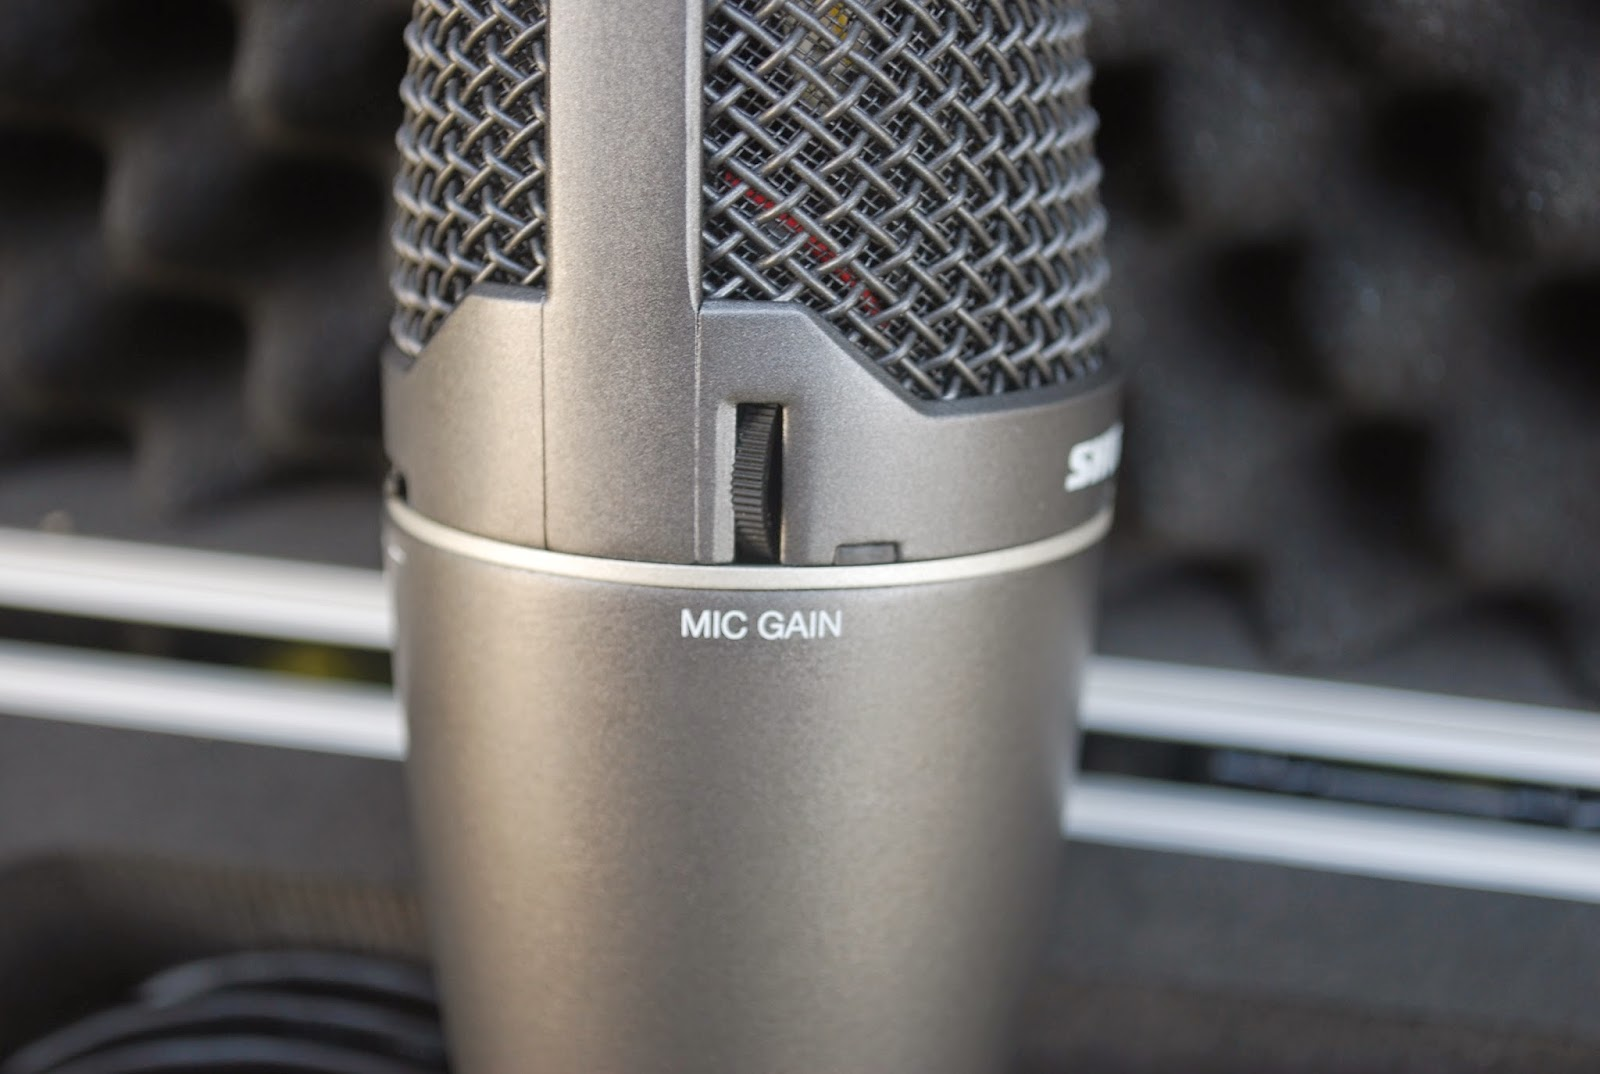 how to stop audio playback from microphone